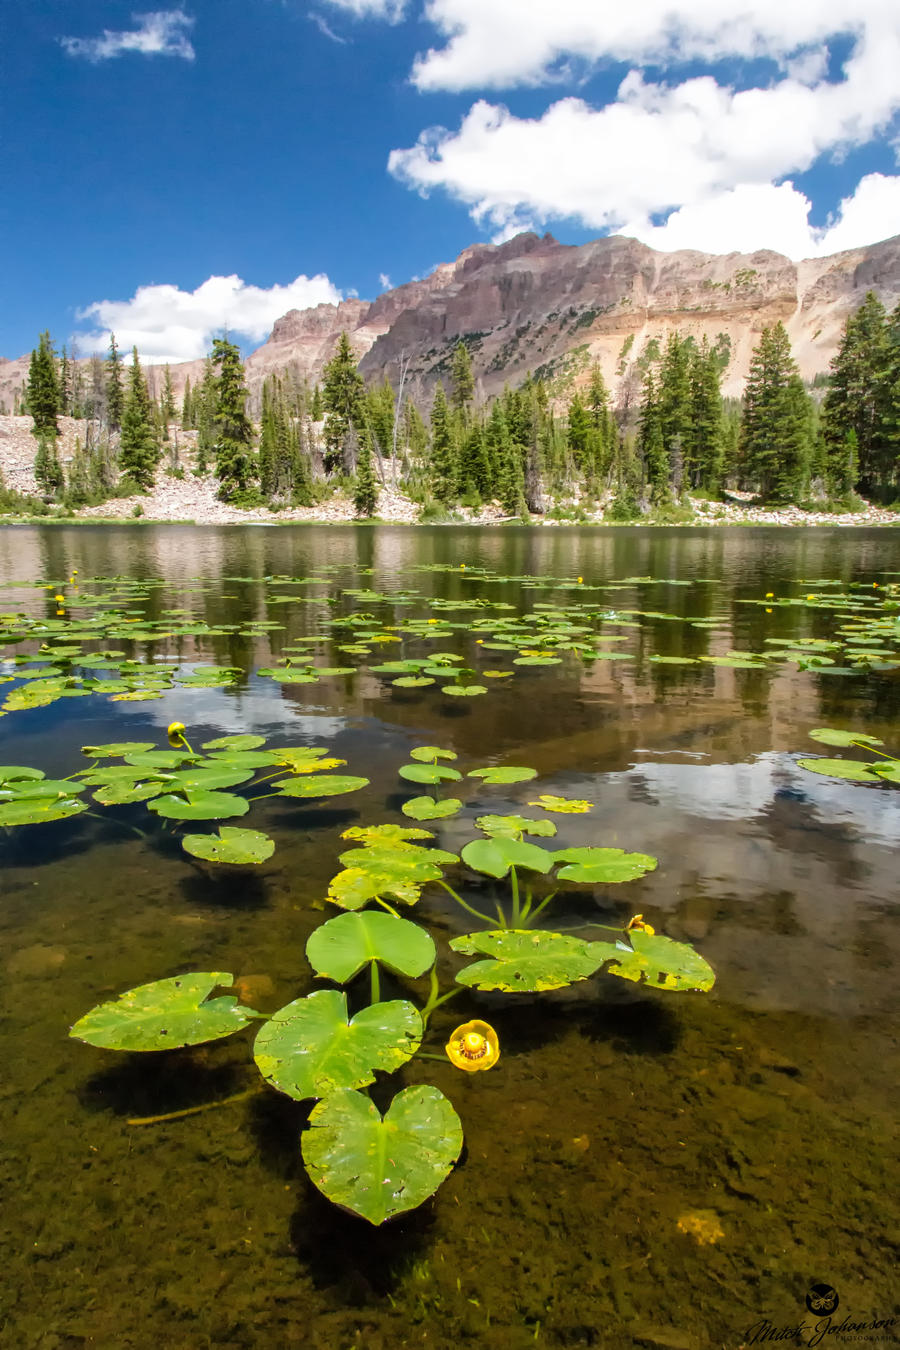 Lily's and Hayden Peak by mjohanson